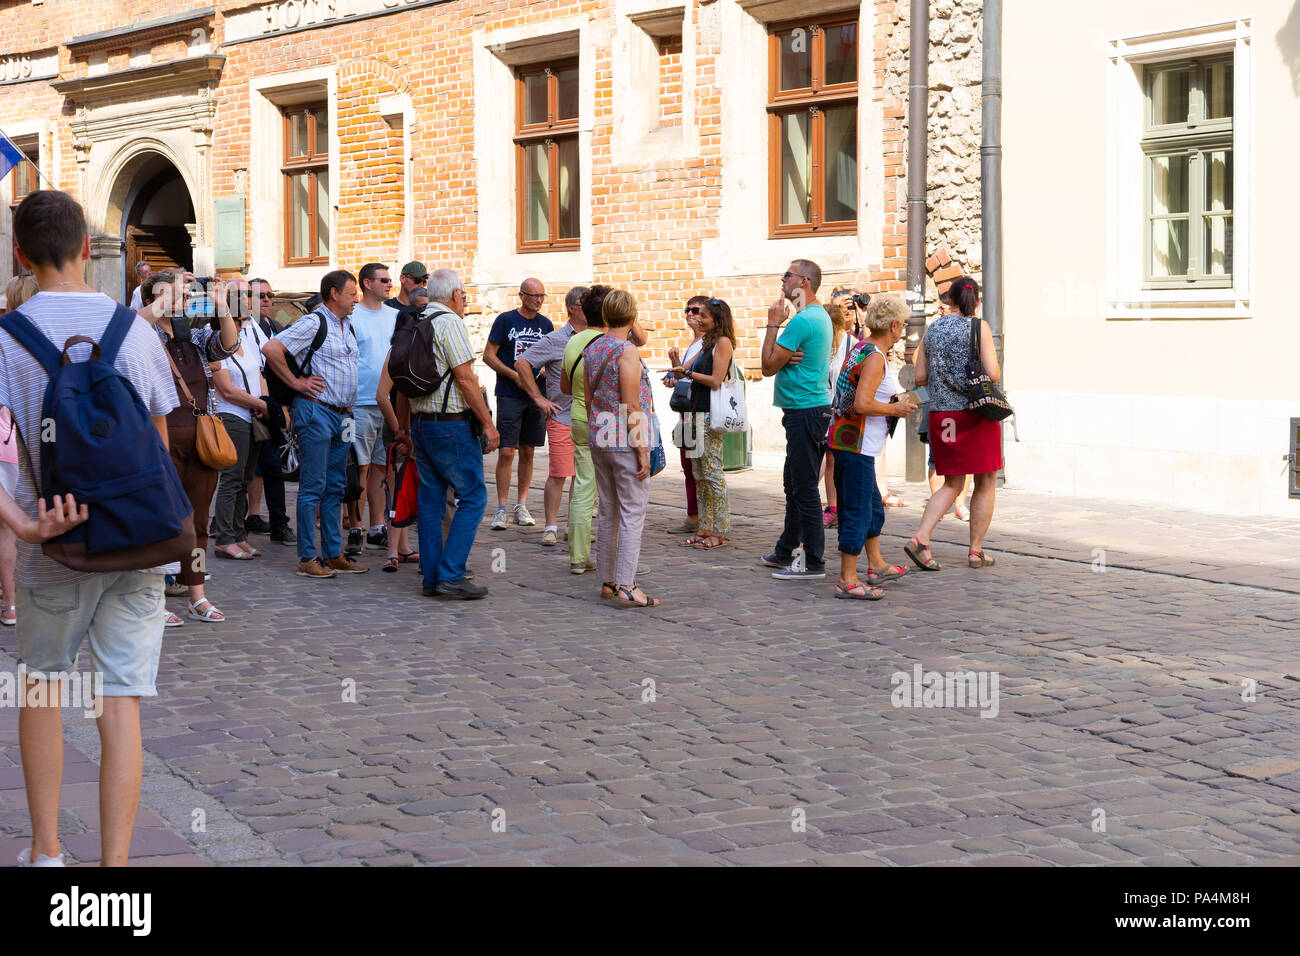 Group of tourists on a guided tour, Krakow, Poland, Europe. - Stock Image